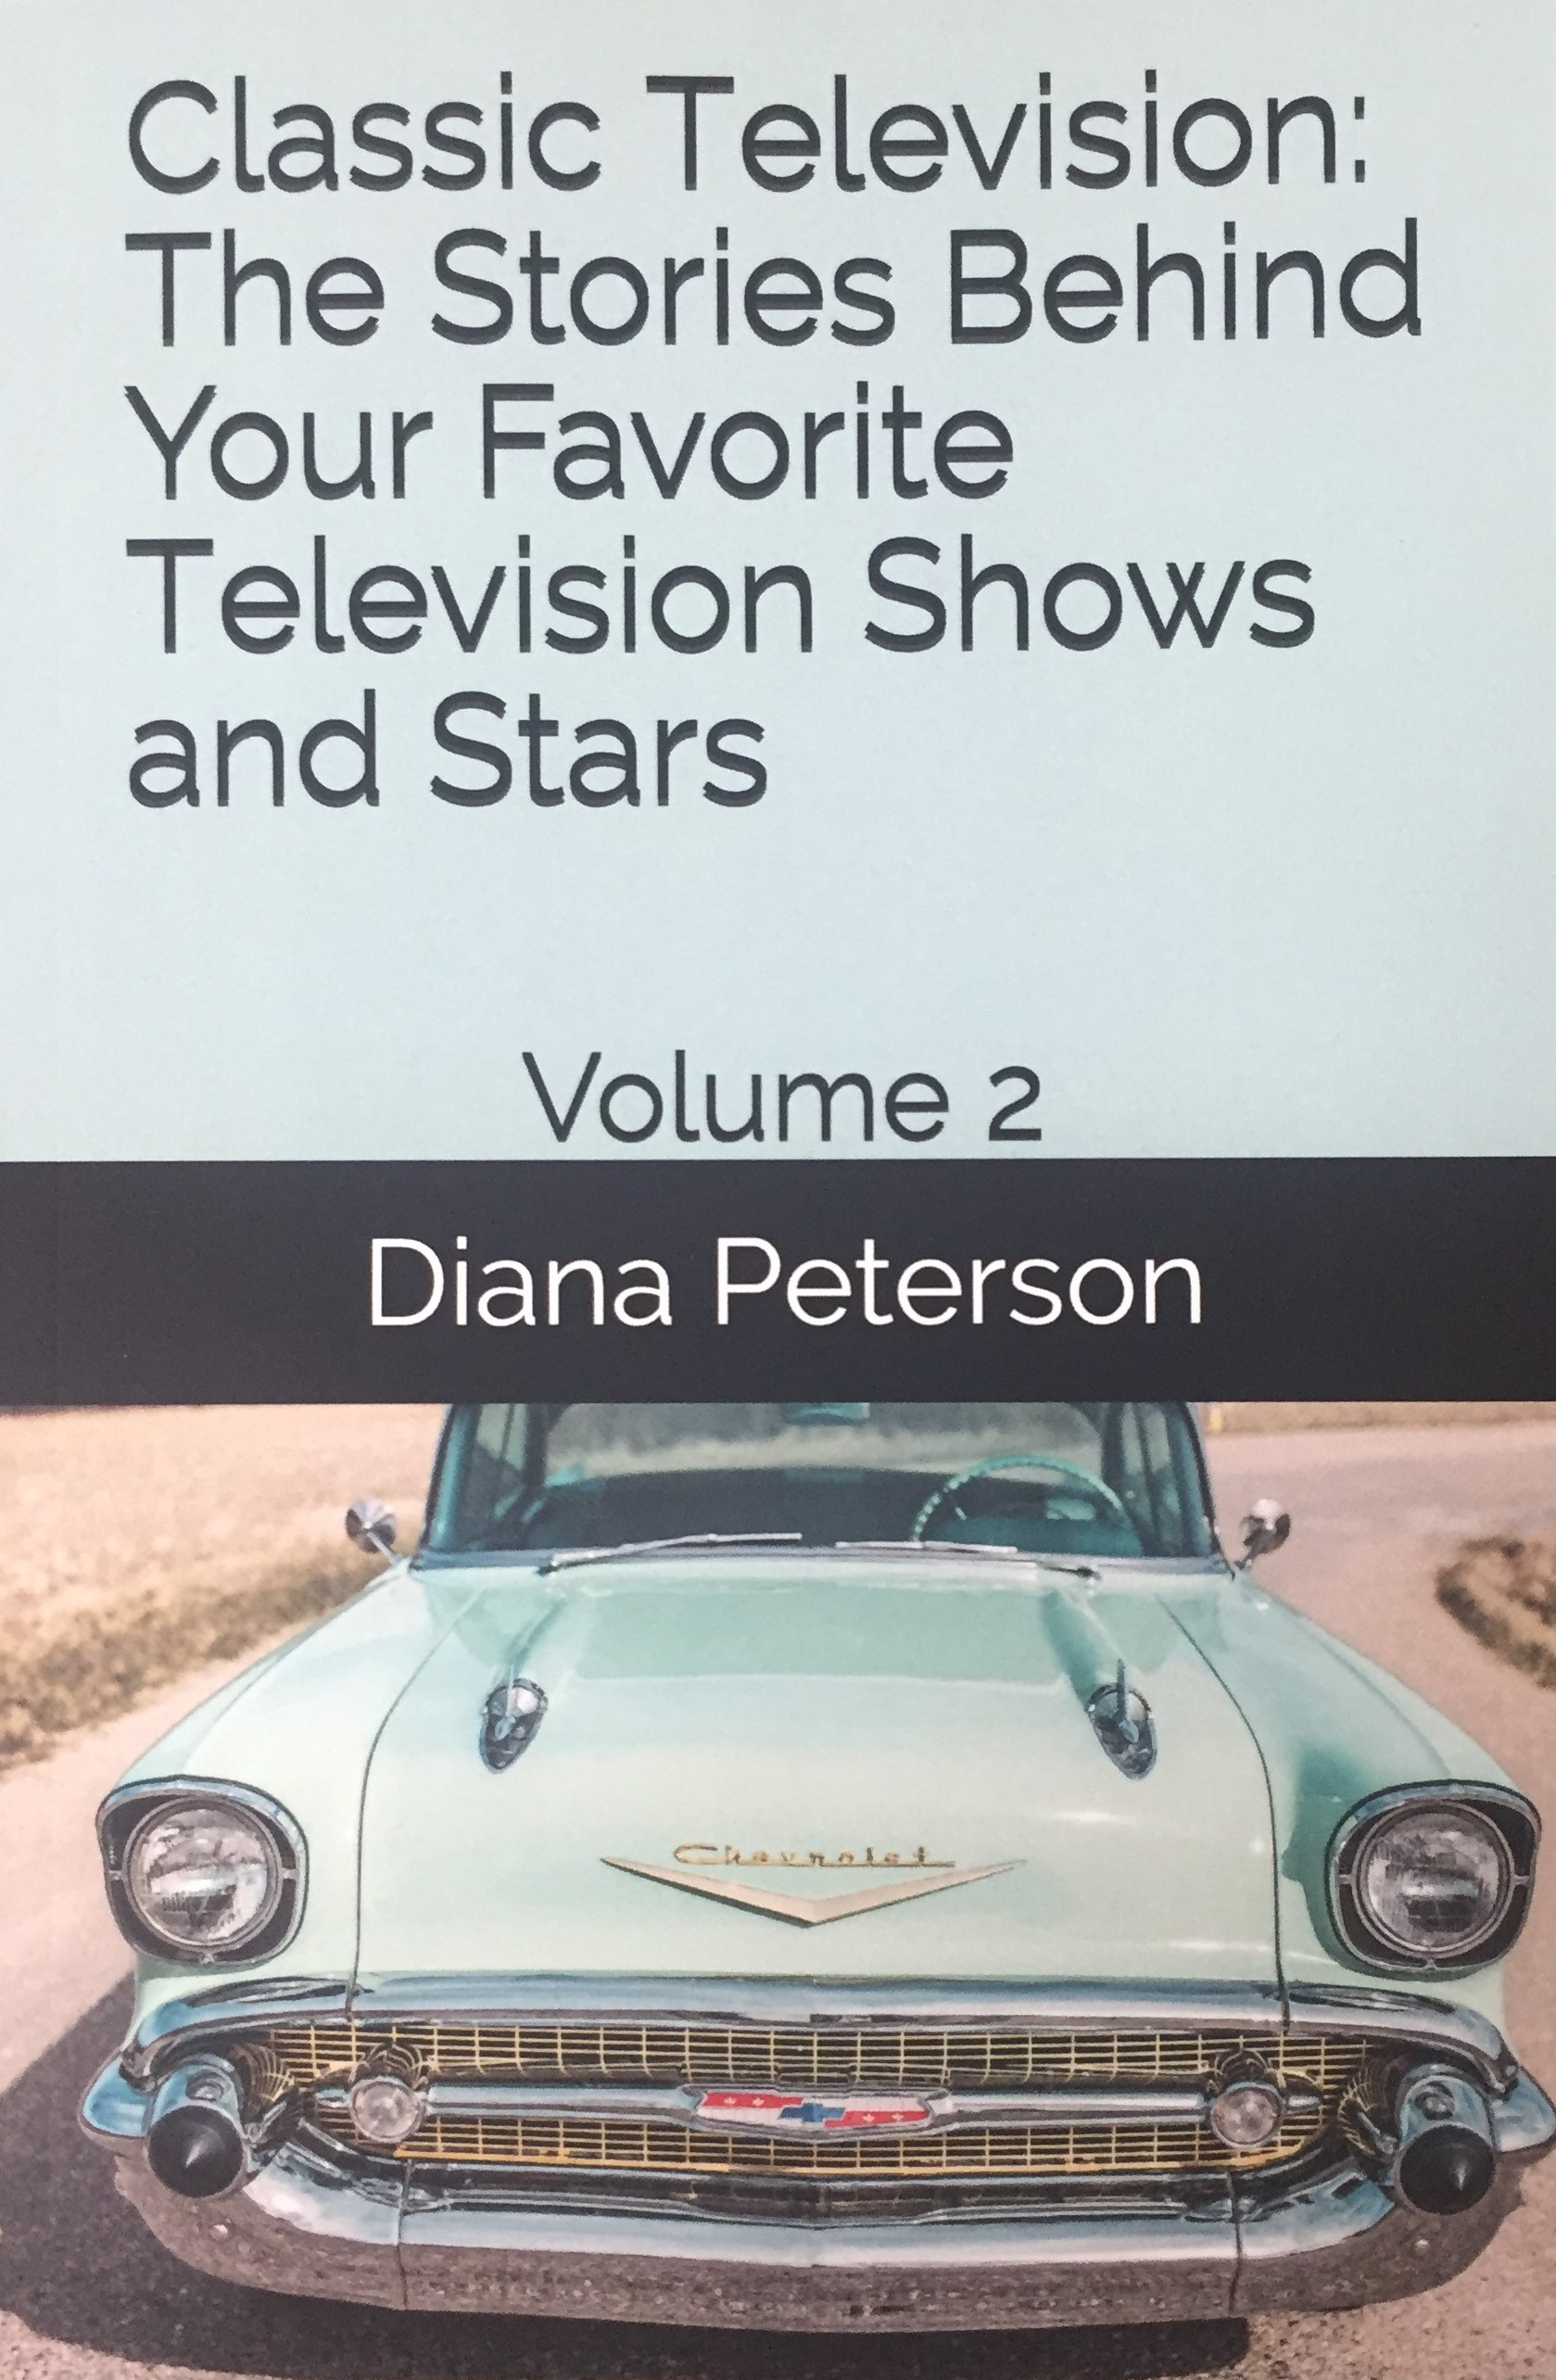 Classic Television: The Stories Behind Your Favorite Television Shows and Stars Volume 2